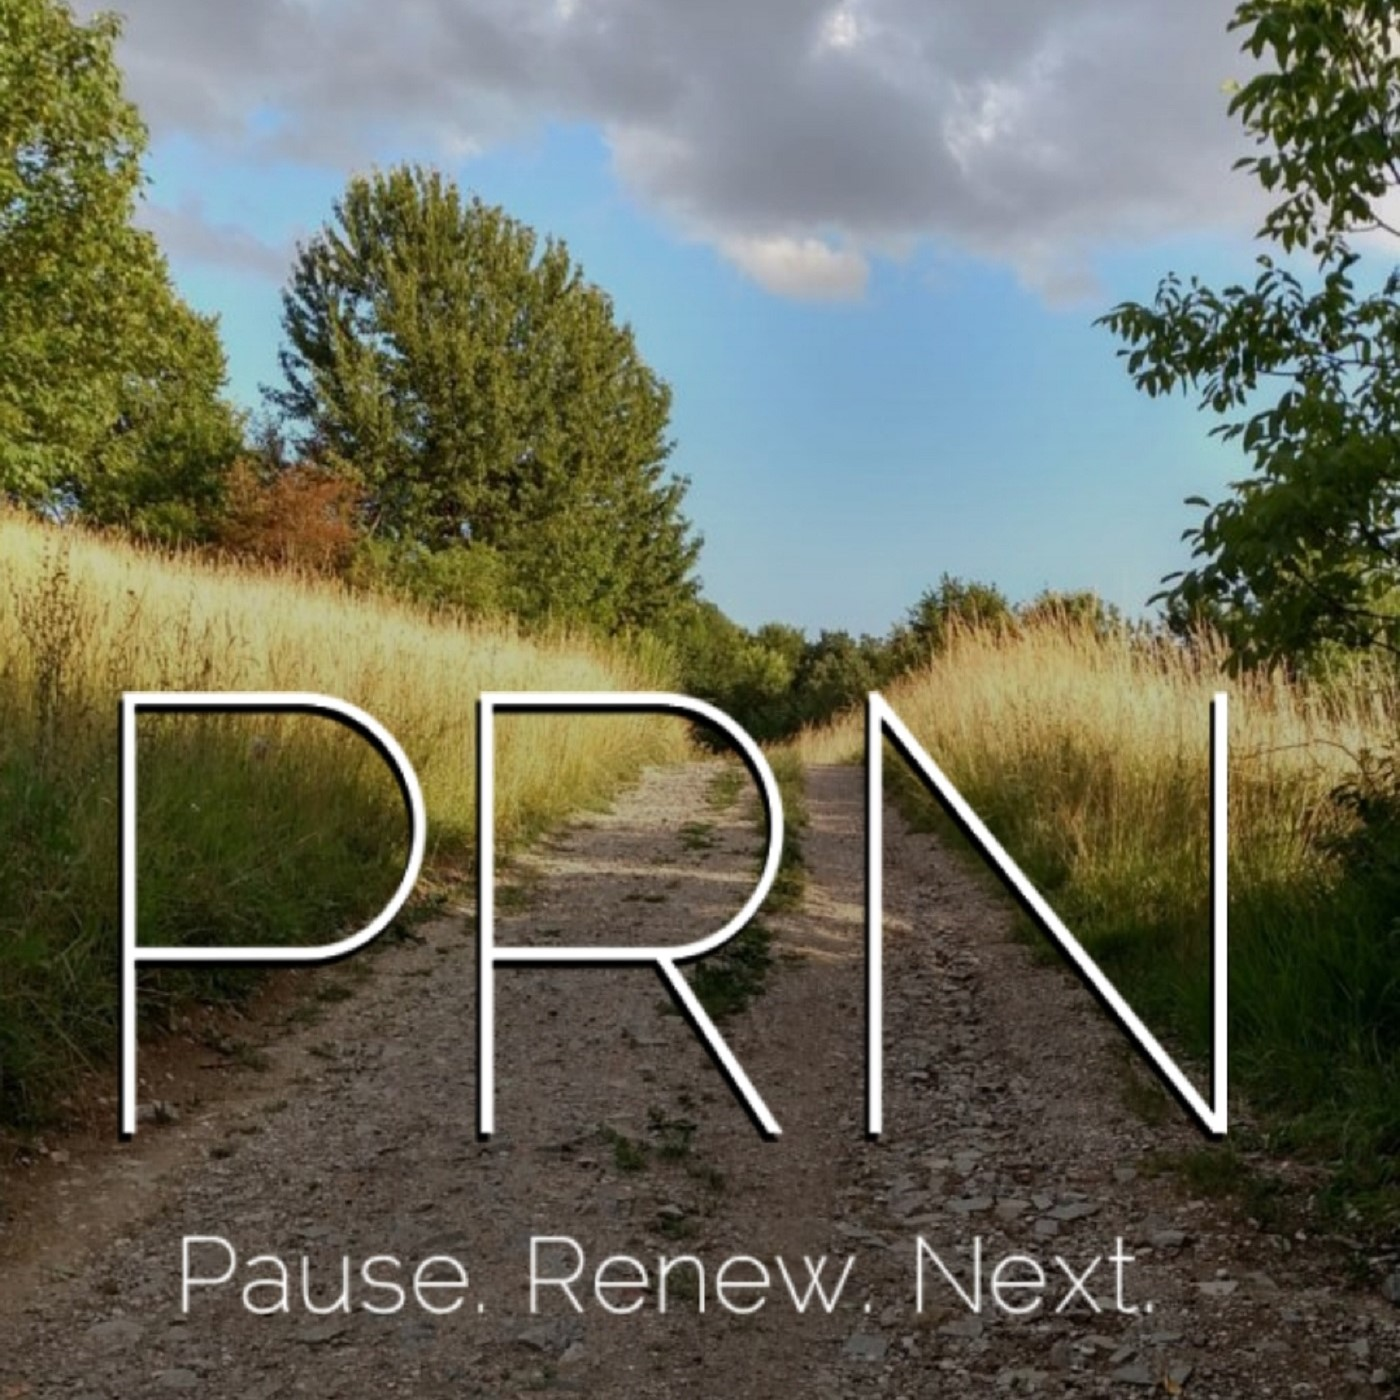 PRN: Pause, Renew, Next